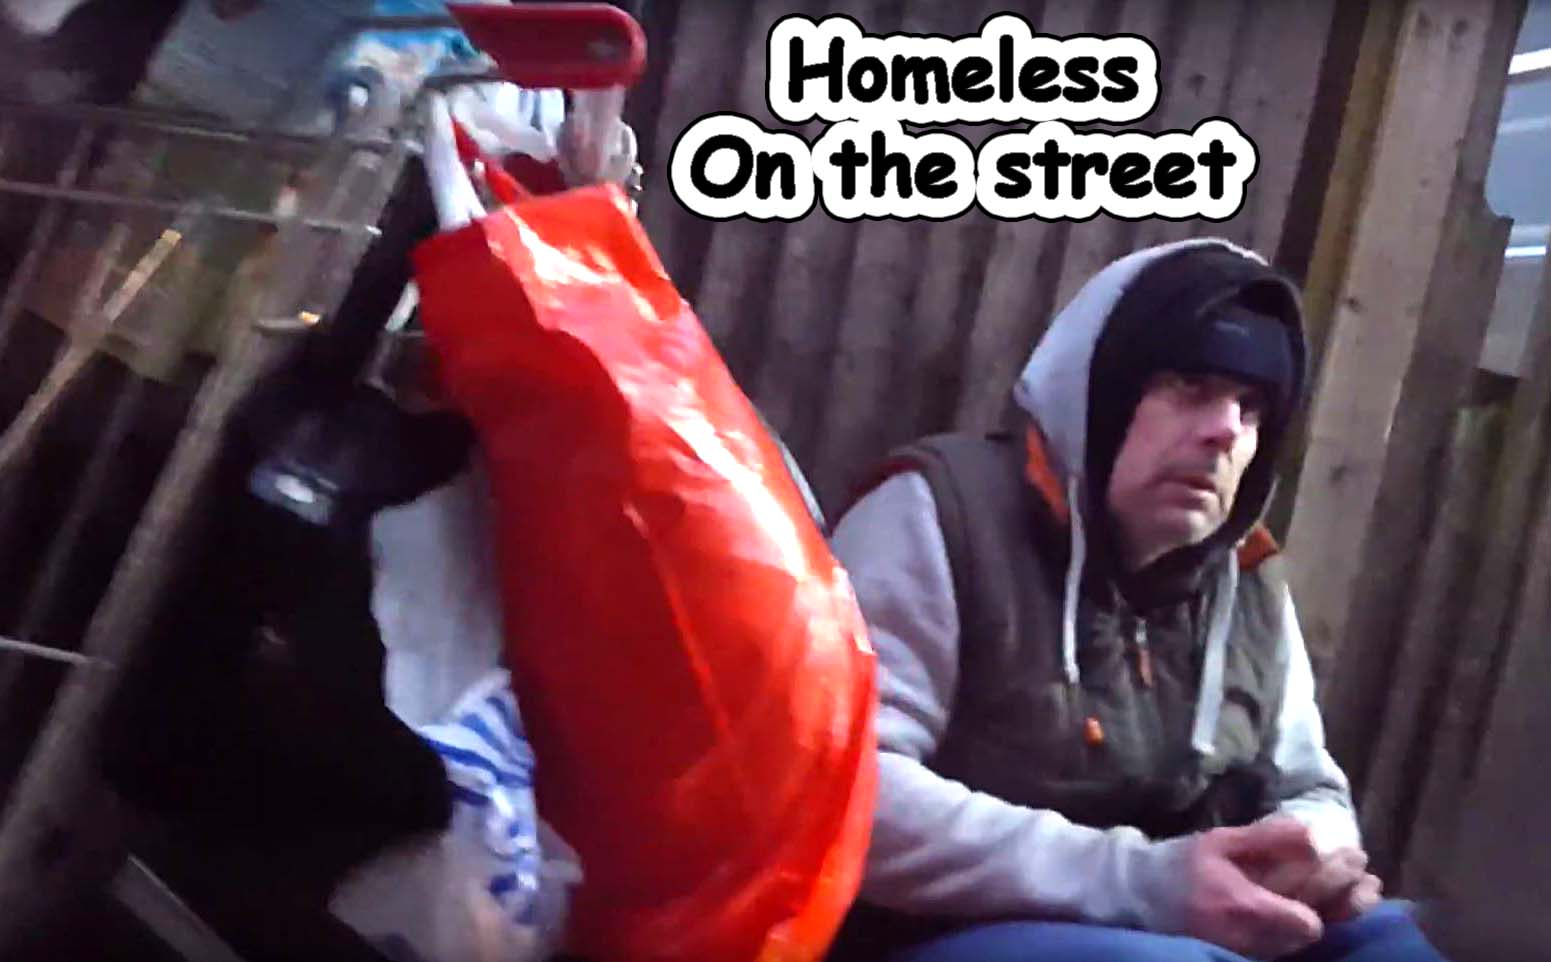 Advice & Information for Homeless in Hertfordshire